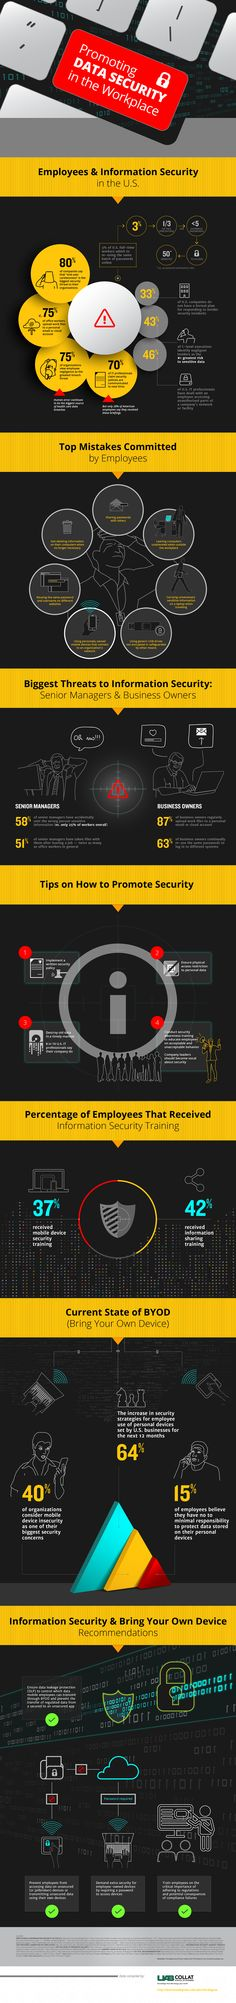 Promoting Data Security in the Workplace #infographic #Data #Security #IT